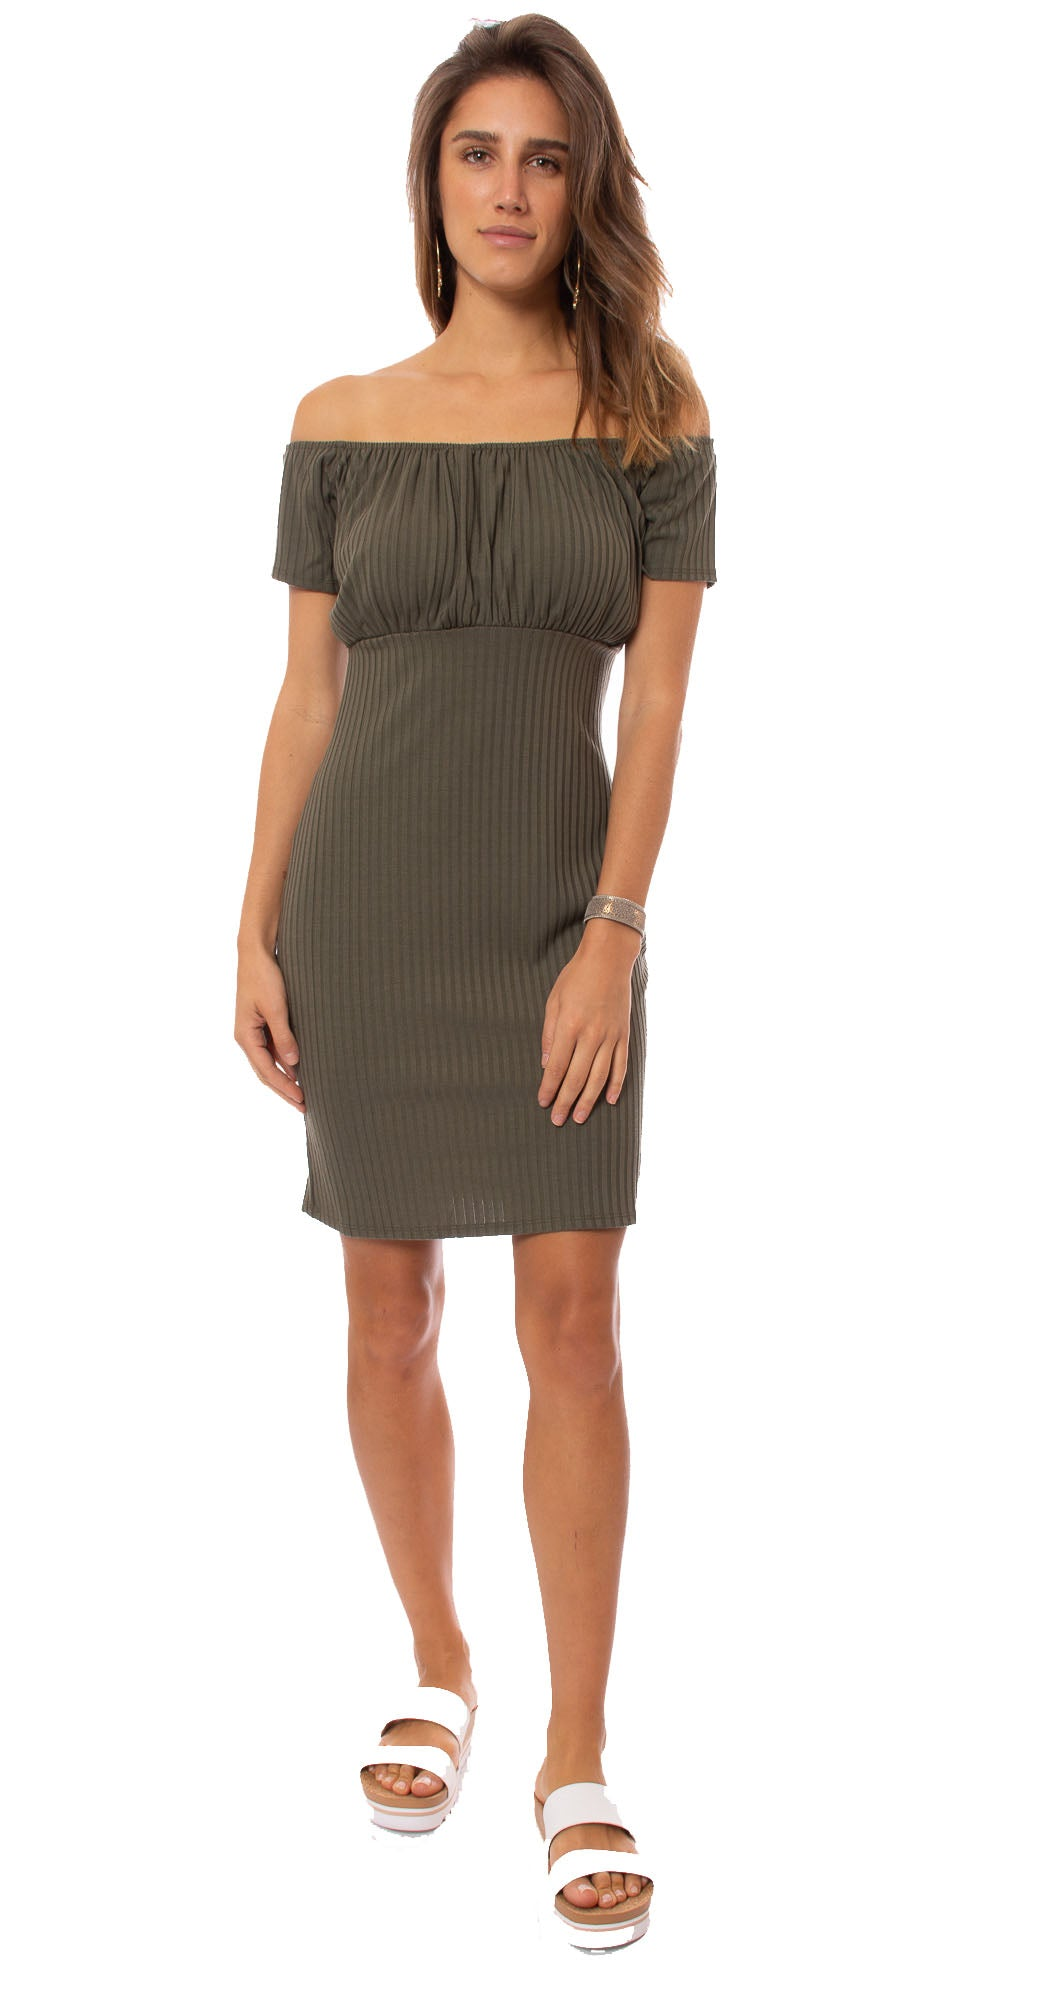 Apricot - Fitted Dress (453173, Khaki)